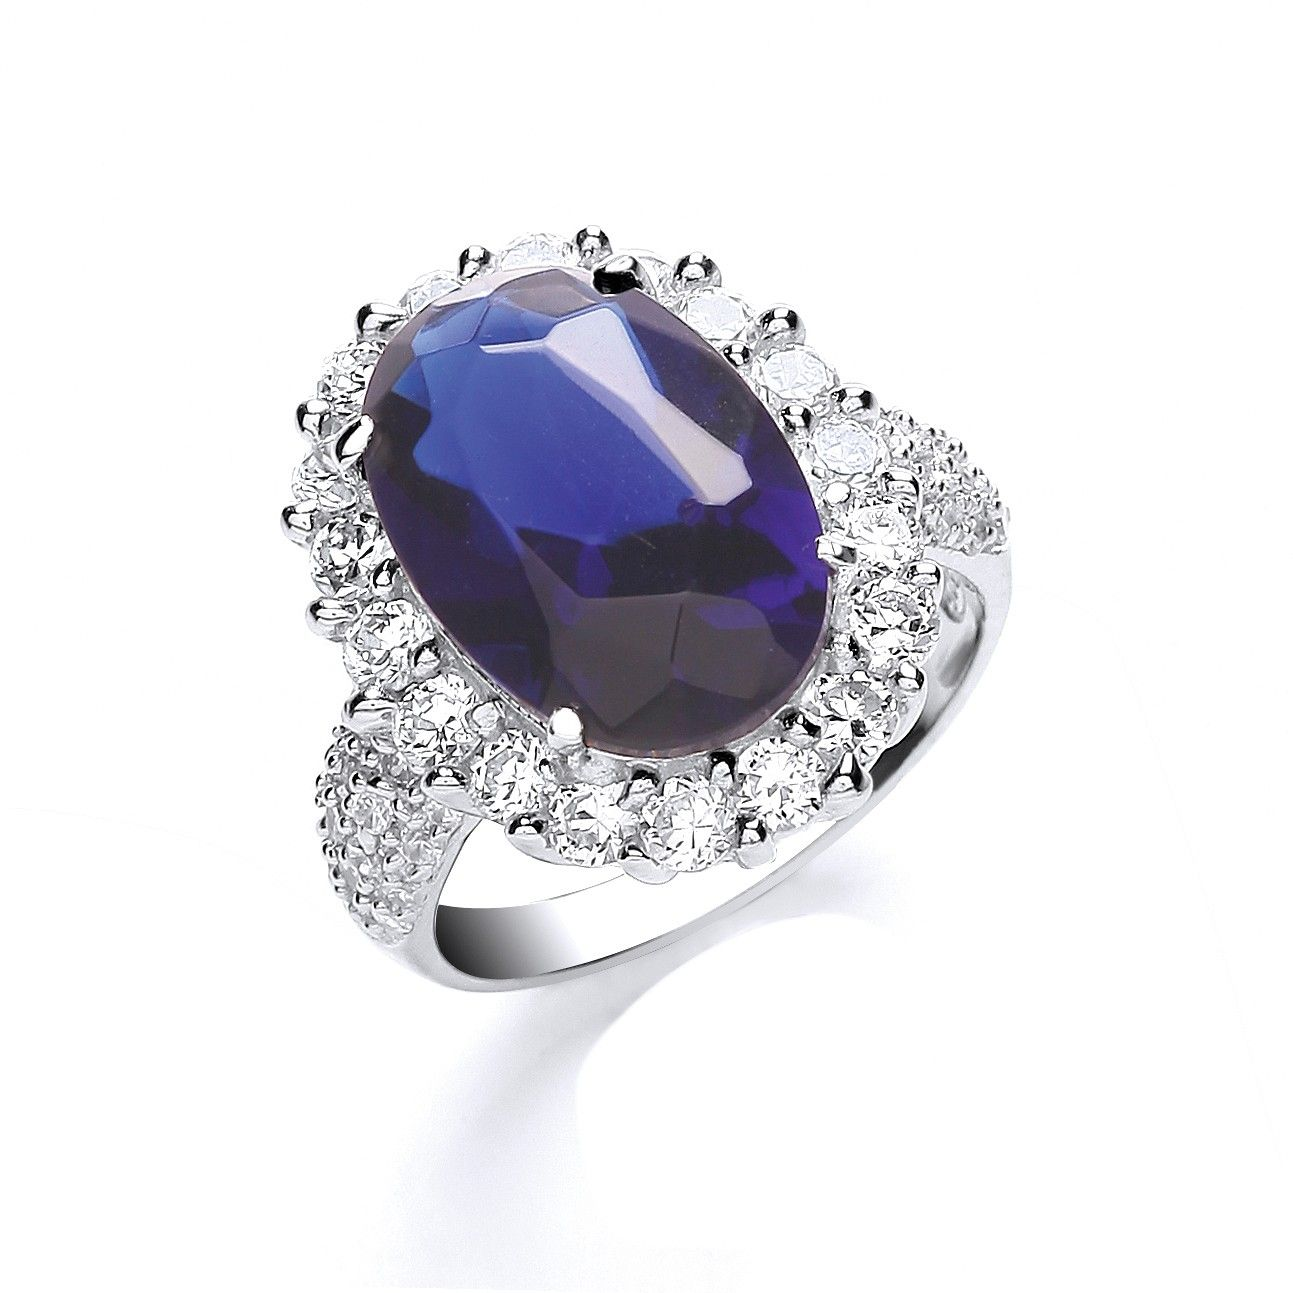 Silver Blue Oval Solitaire Cz with Cz Surrounding/Shld Ring